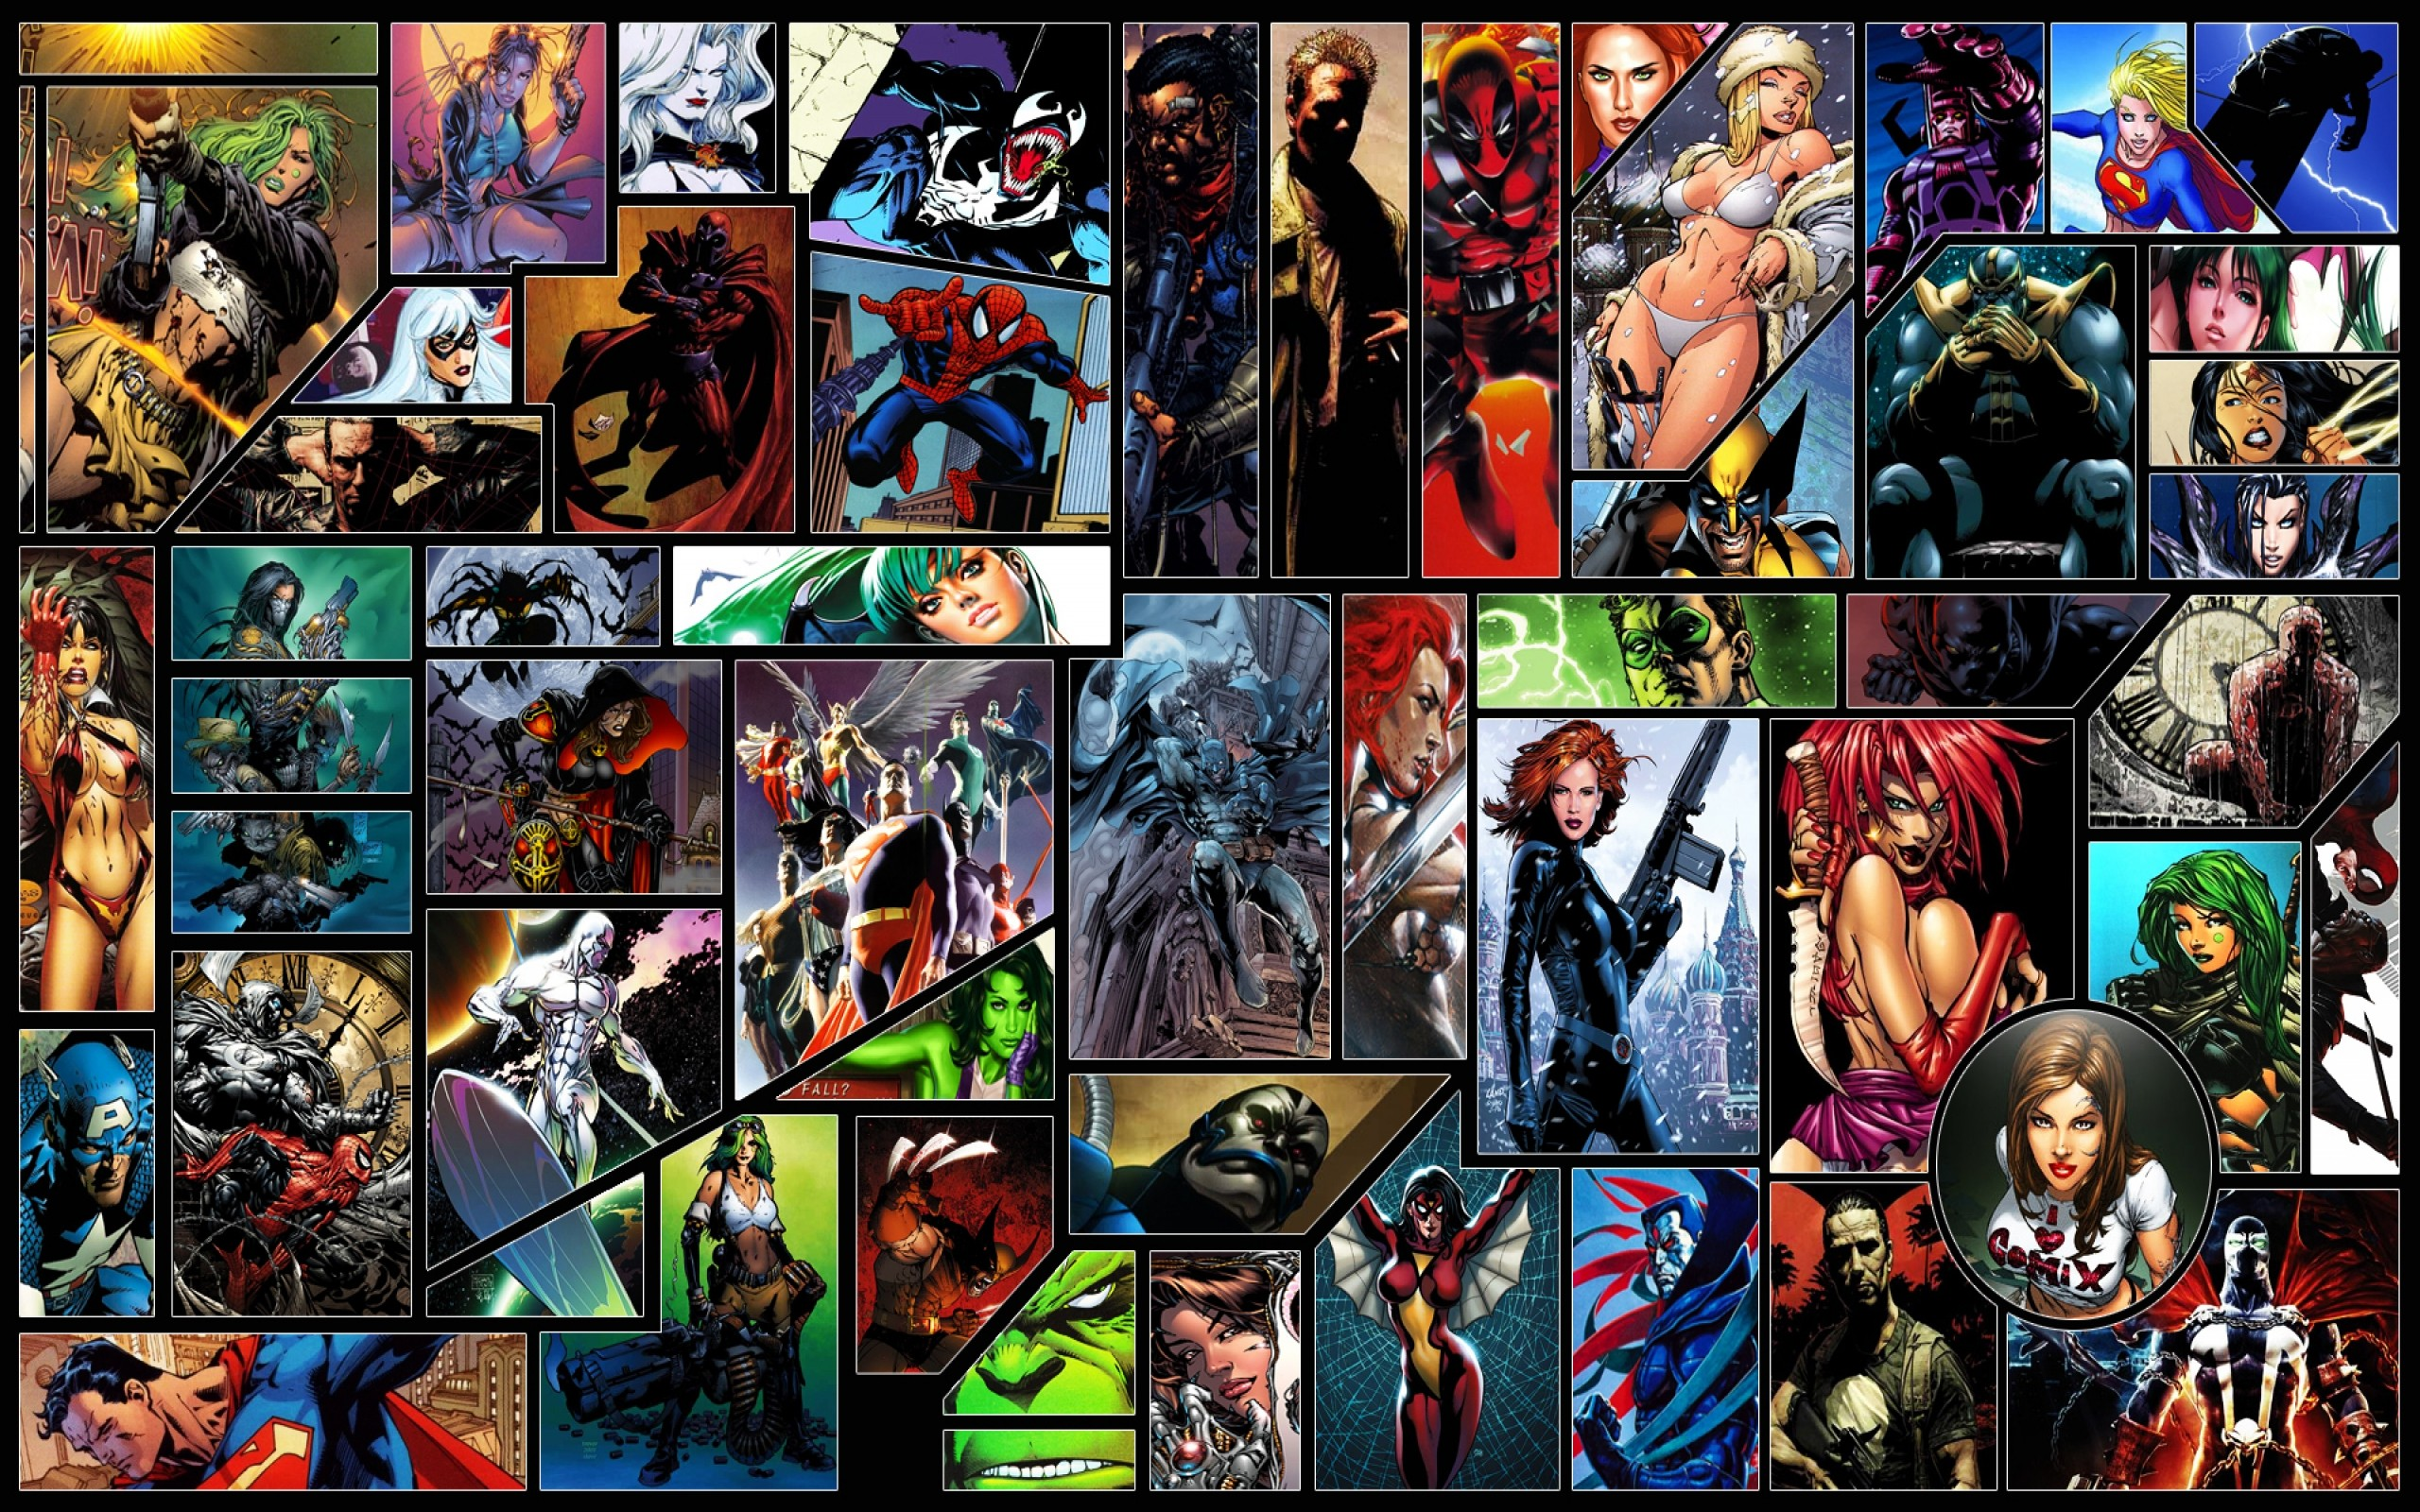 Dc comics superheroes marvel wallpaper 2560x1600 15905 2560x1600